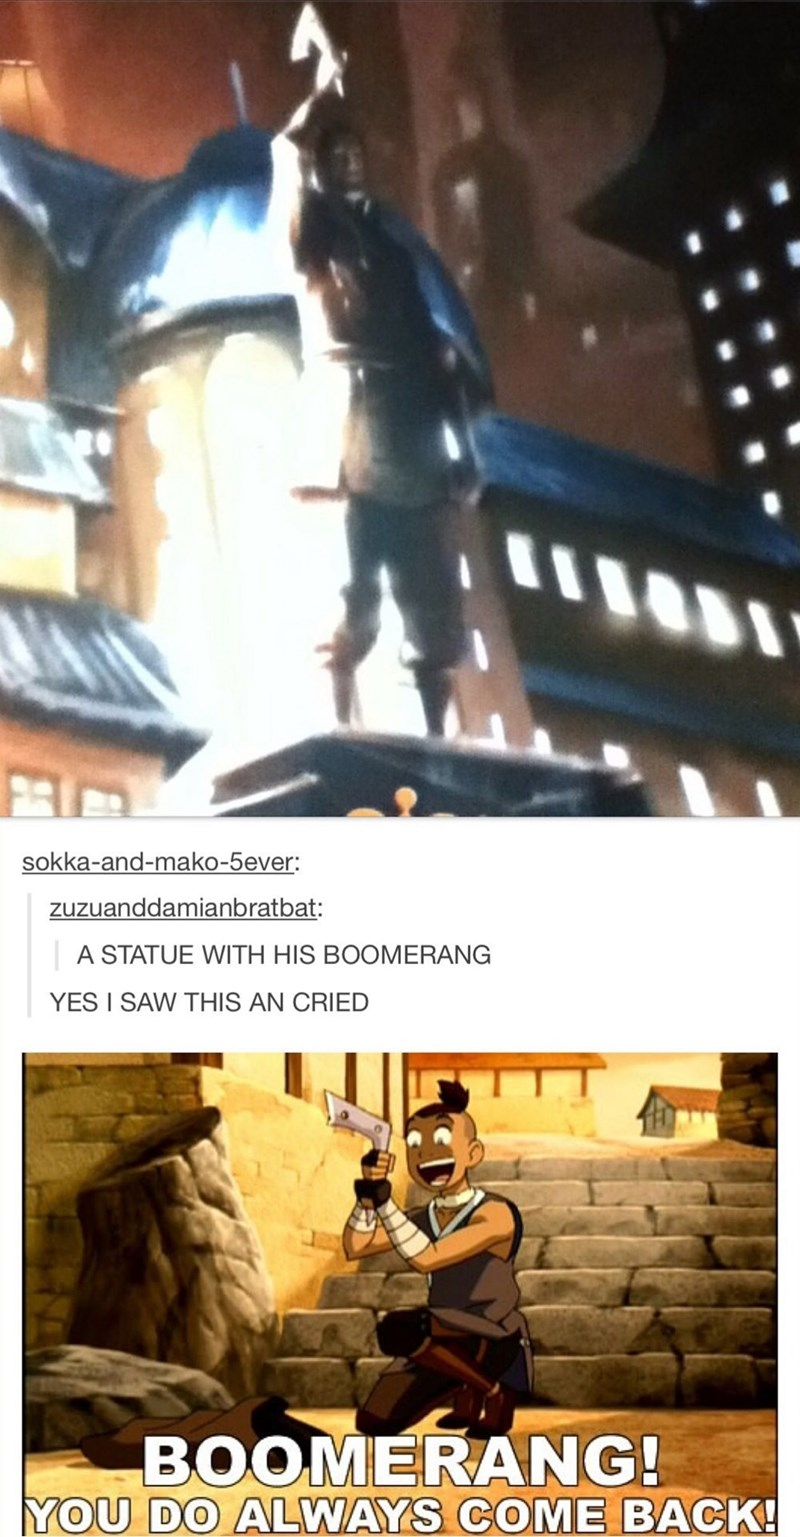 Fictional character - sokka-and-mako-5ever: zuzuanddamianbratbat: A STATUE WITH HIS BOOMERANG YES I SAW THIS AN CRIED BOOMERANG! YOU DO ALWAYS COME BACK!